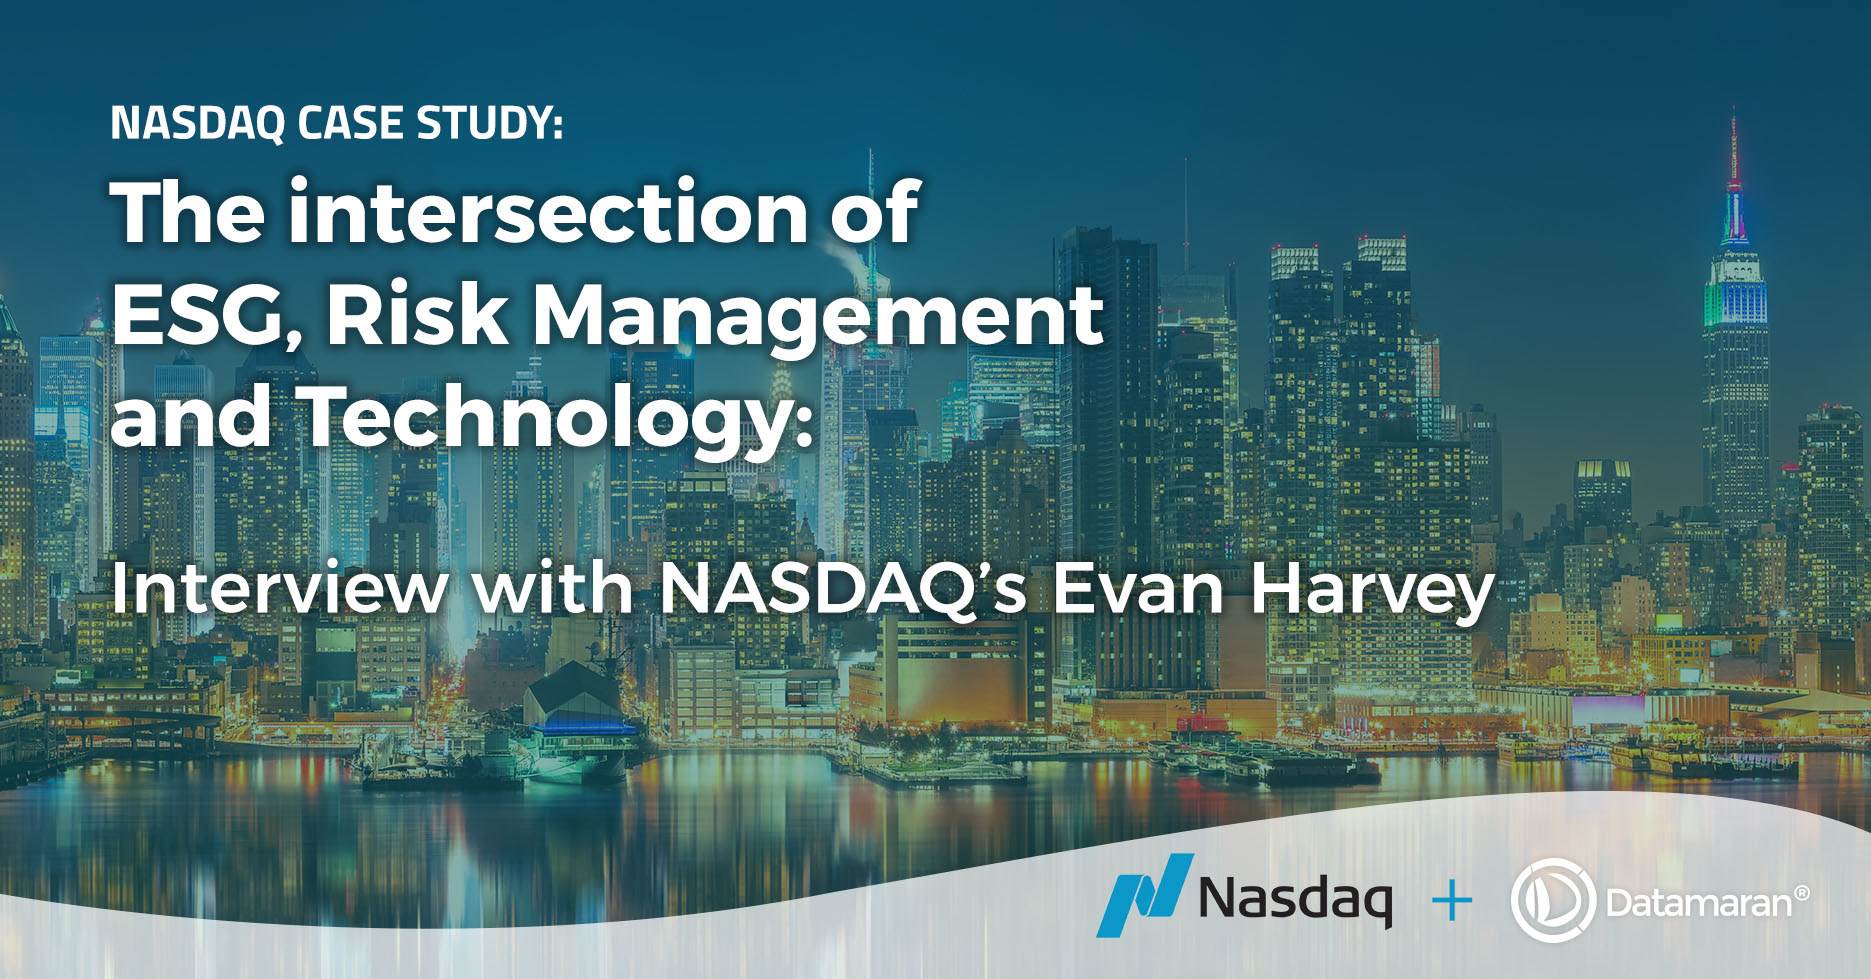 The intersection of ESG, Risk Management and Technology: interview with NASDAQ's Evan Harvey